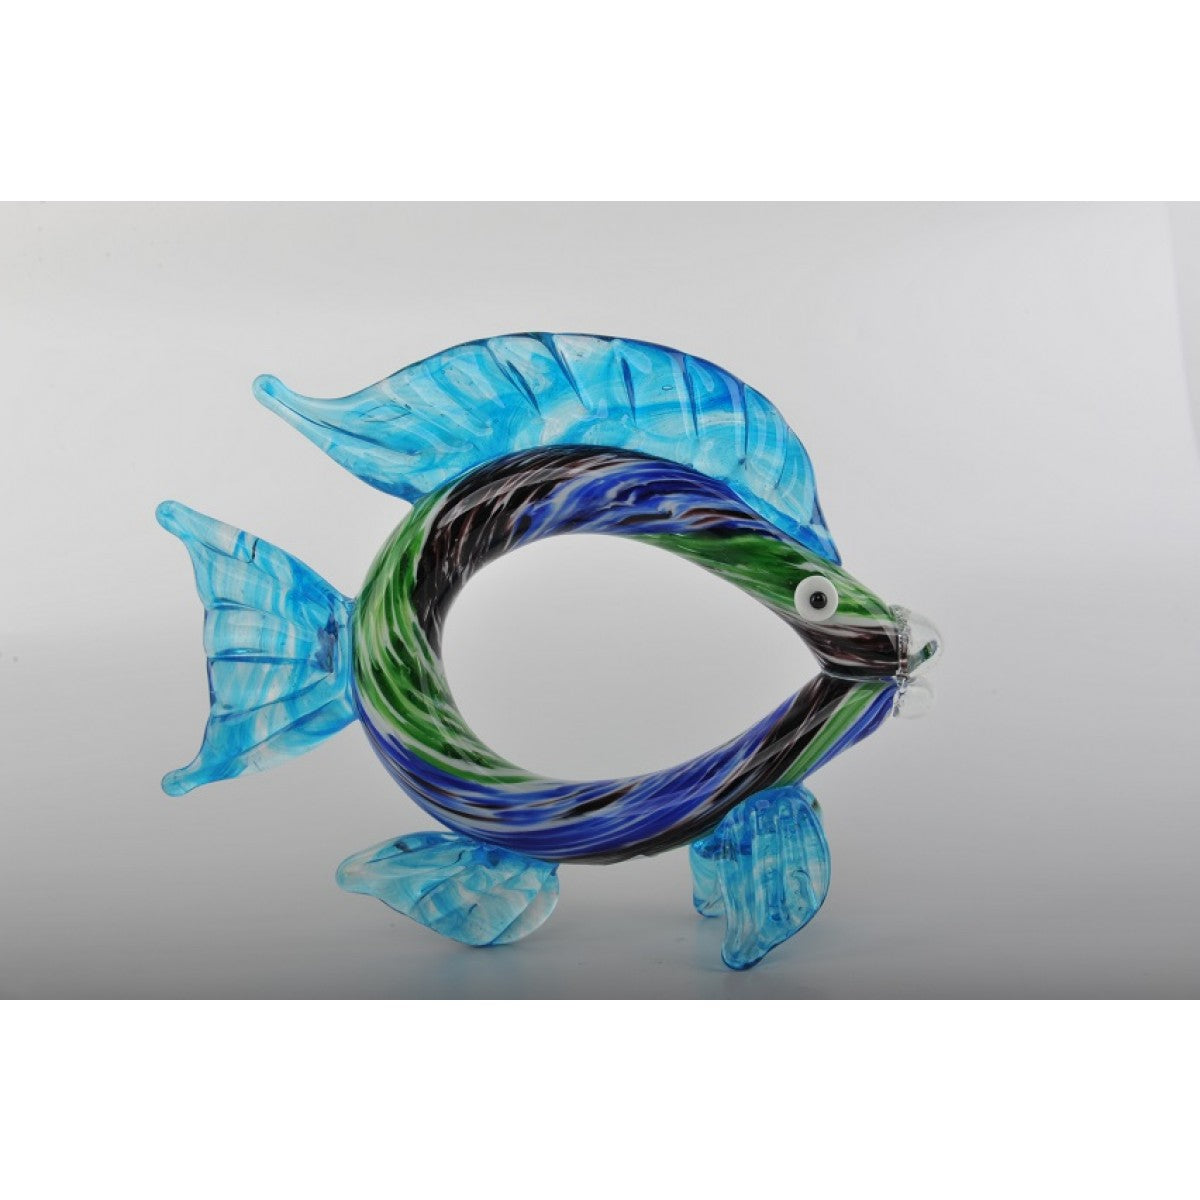 Glass Decoration of Blue & Green Fish